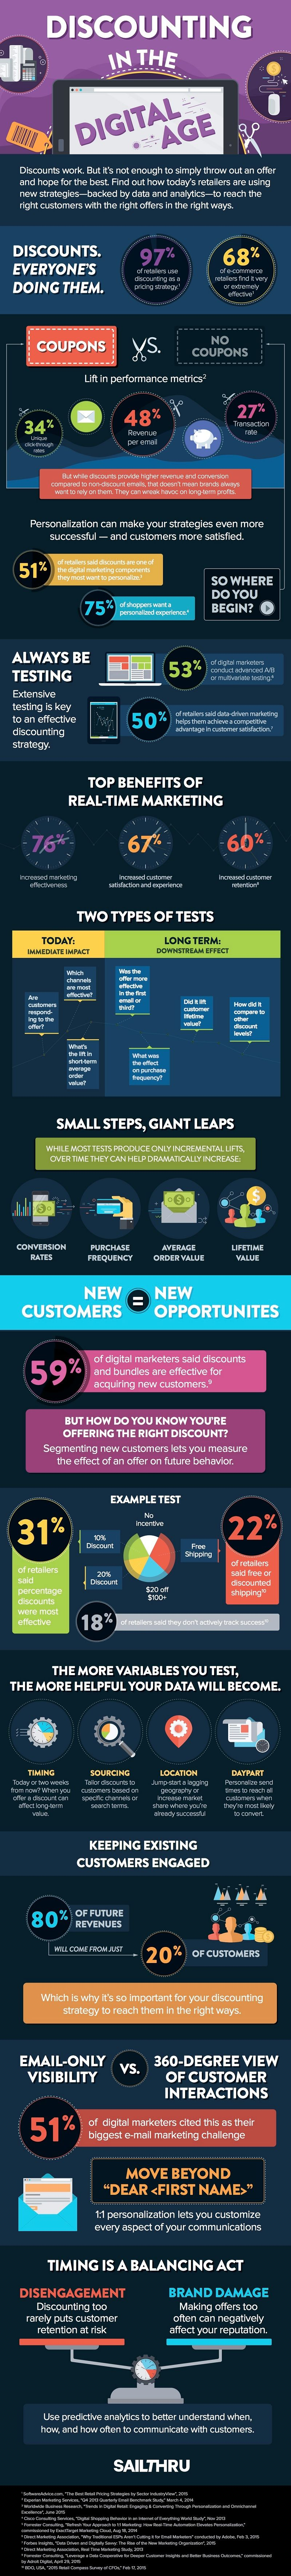 151107-discounts-in-the-digital-age-infographic